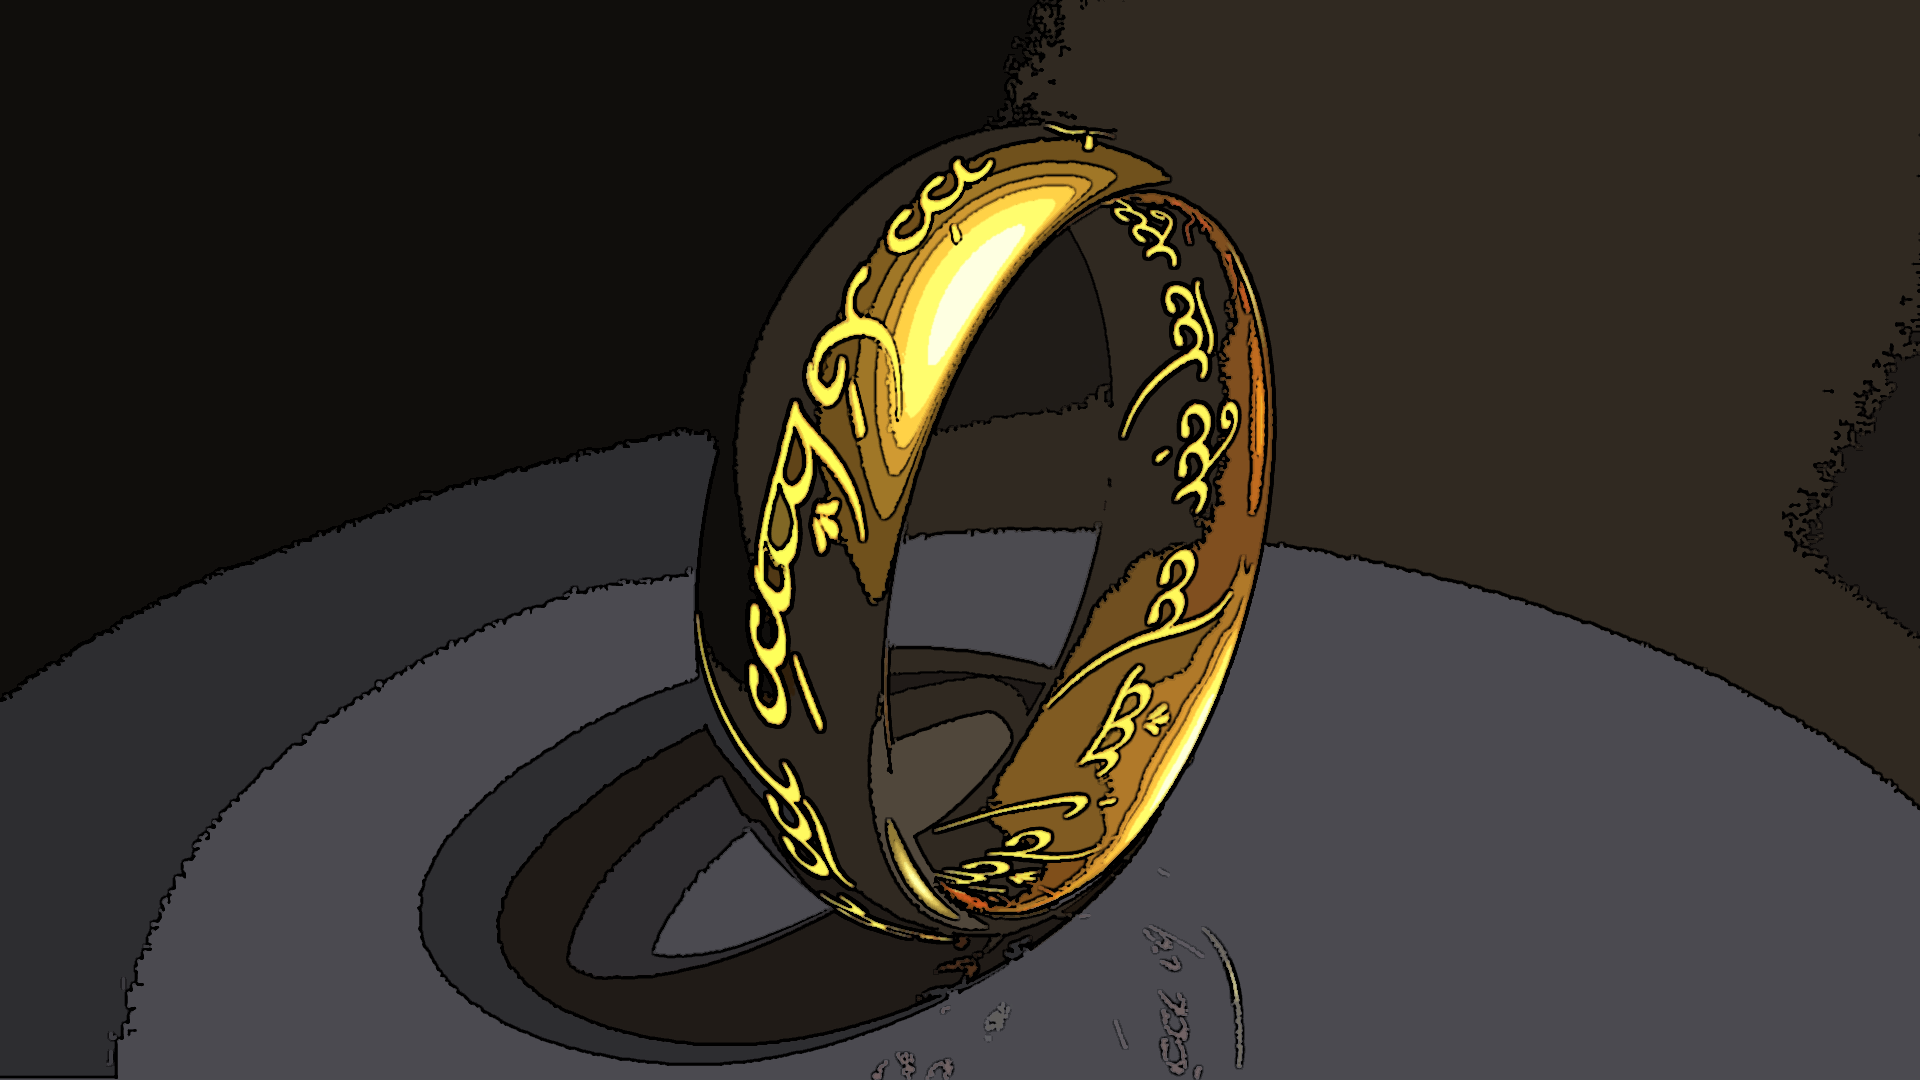 The One Ring Artistic Wallpaper By Workfromhomegal On Deviantart